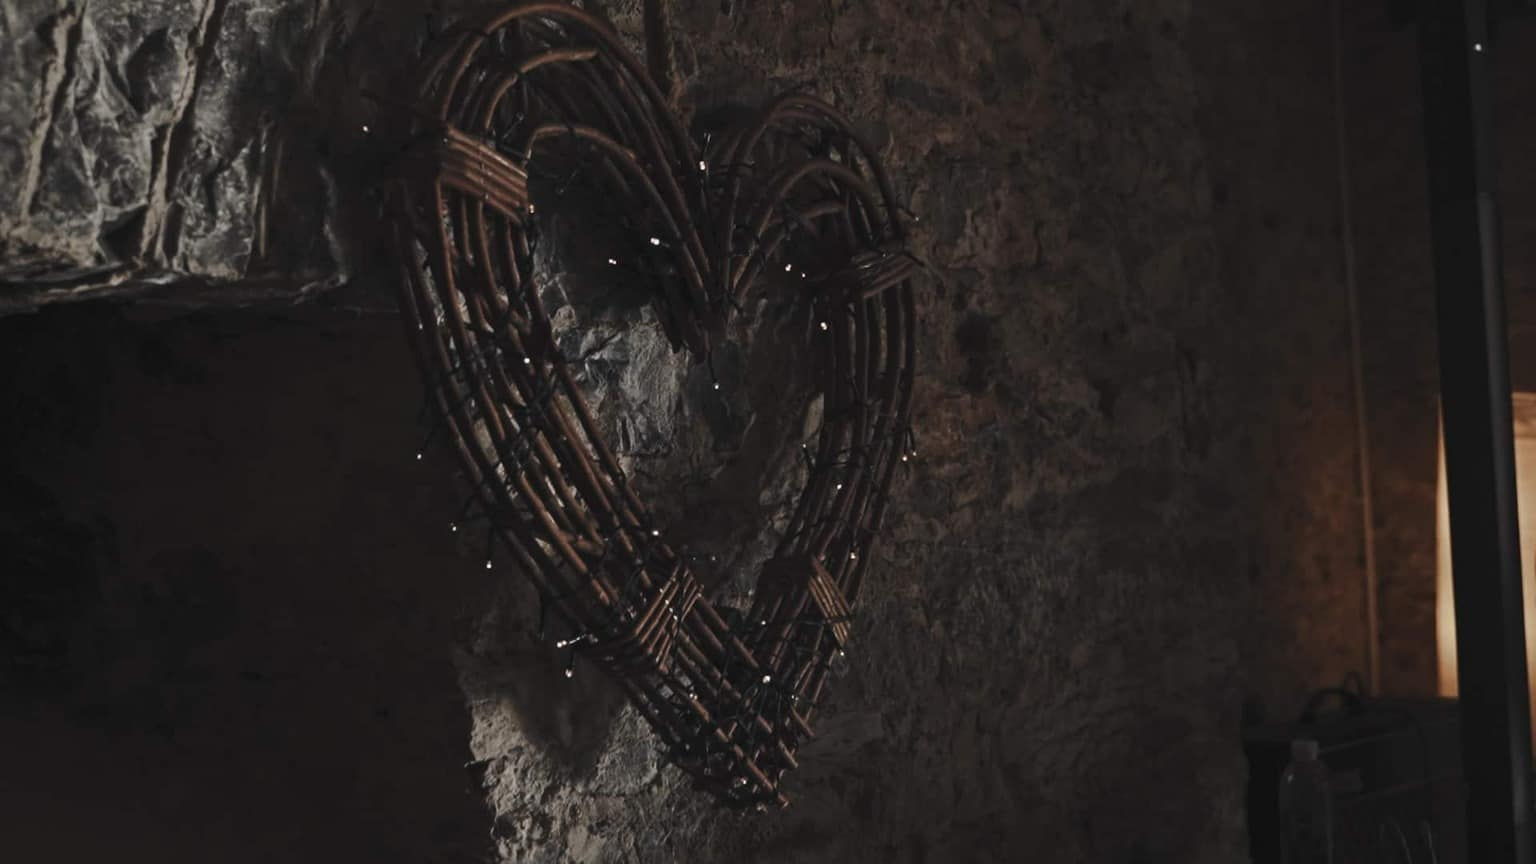 heart decoration hanging on the wall